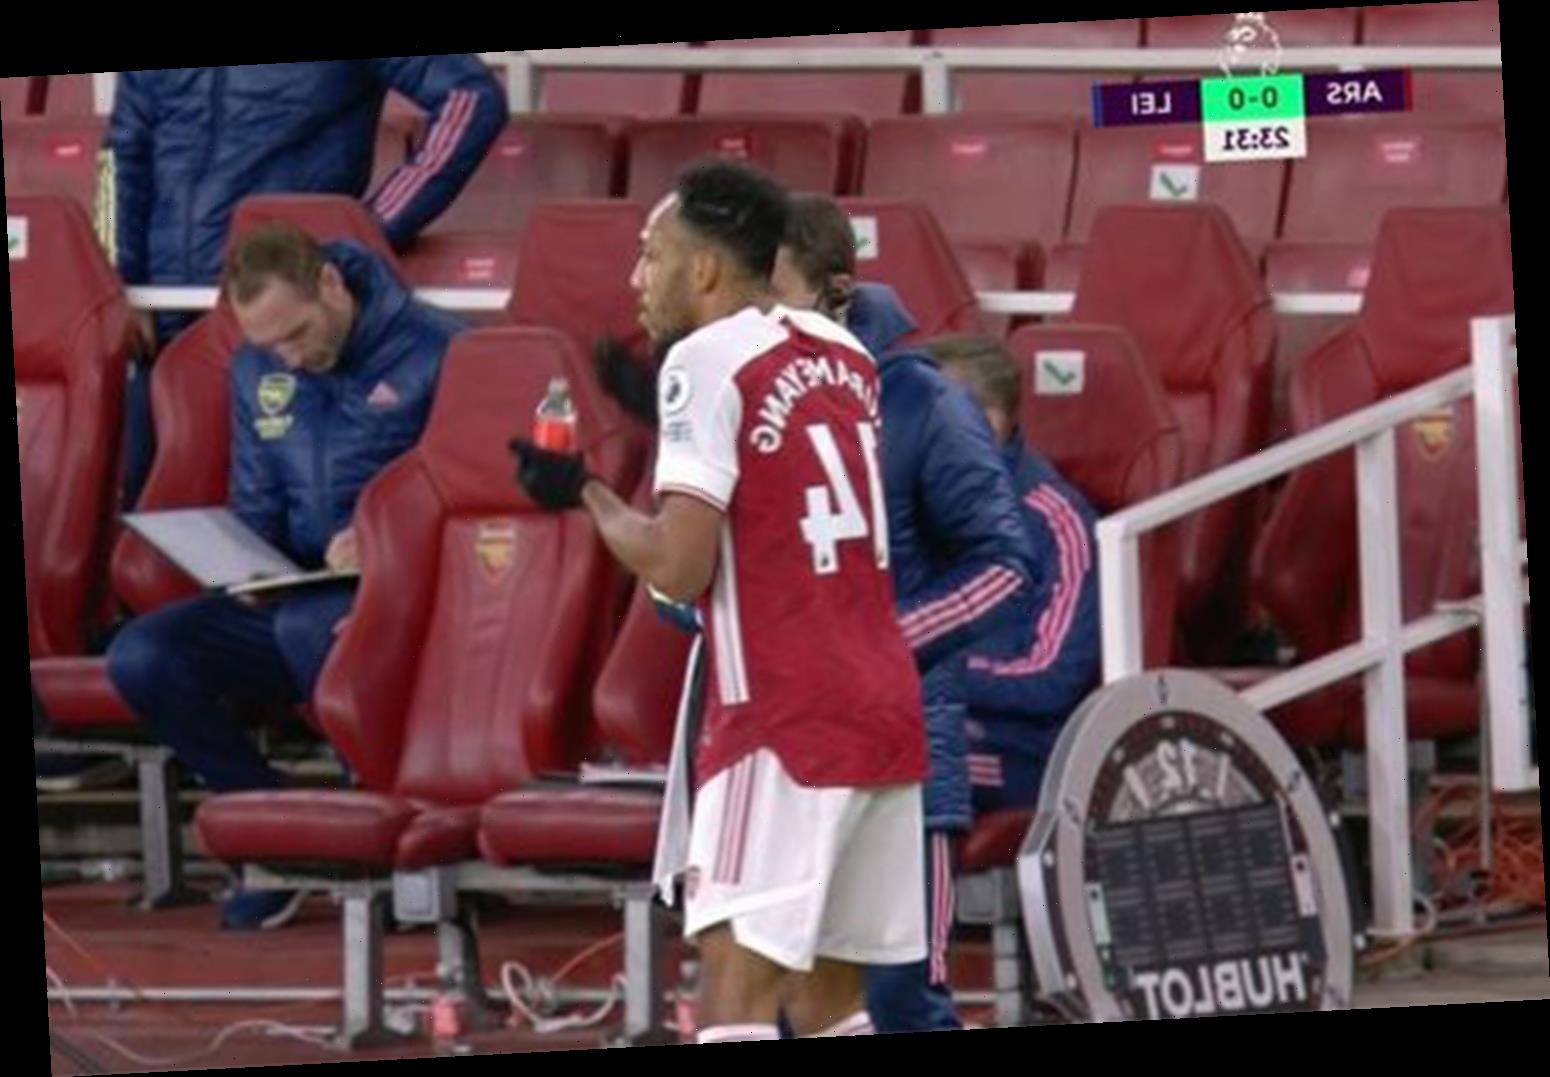 Worried Arsenal fans spot Aubameyang taking tablets from doctor during defeat to Leicester as star's barren run goes on